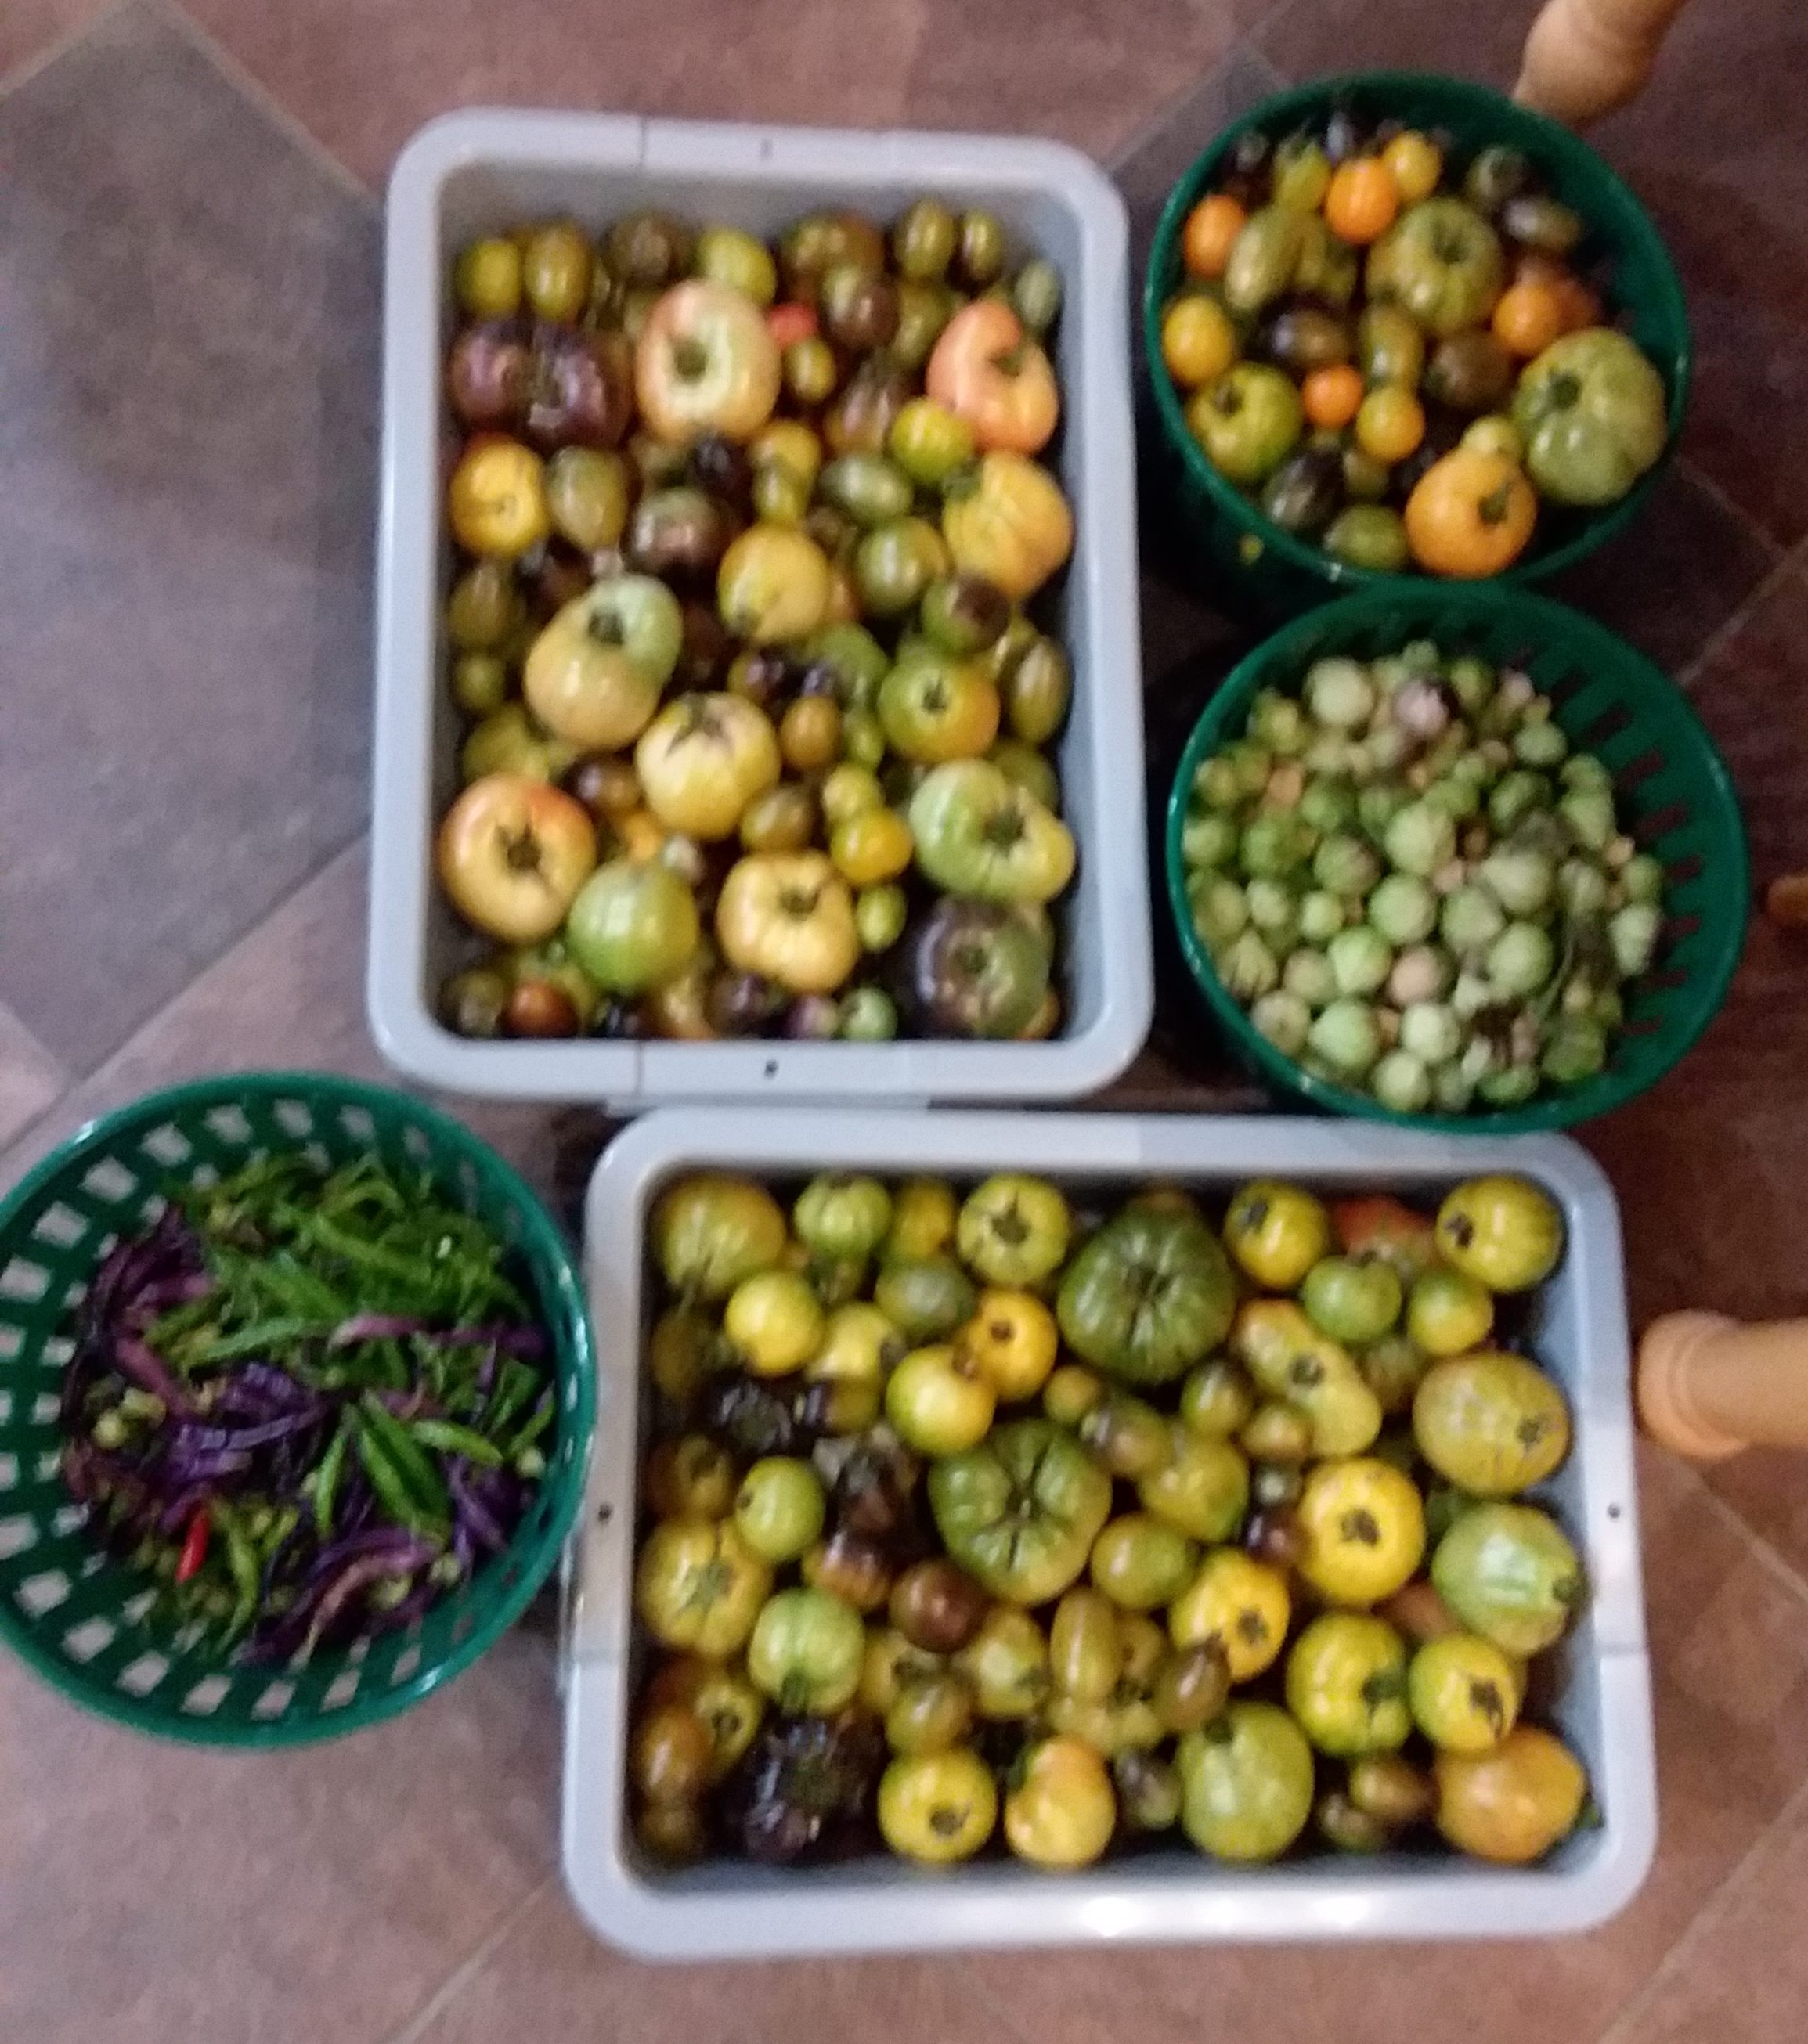 Our second delivery of vegetables to Elkmont Exchange on July 8, 2019.